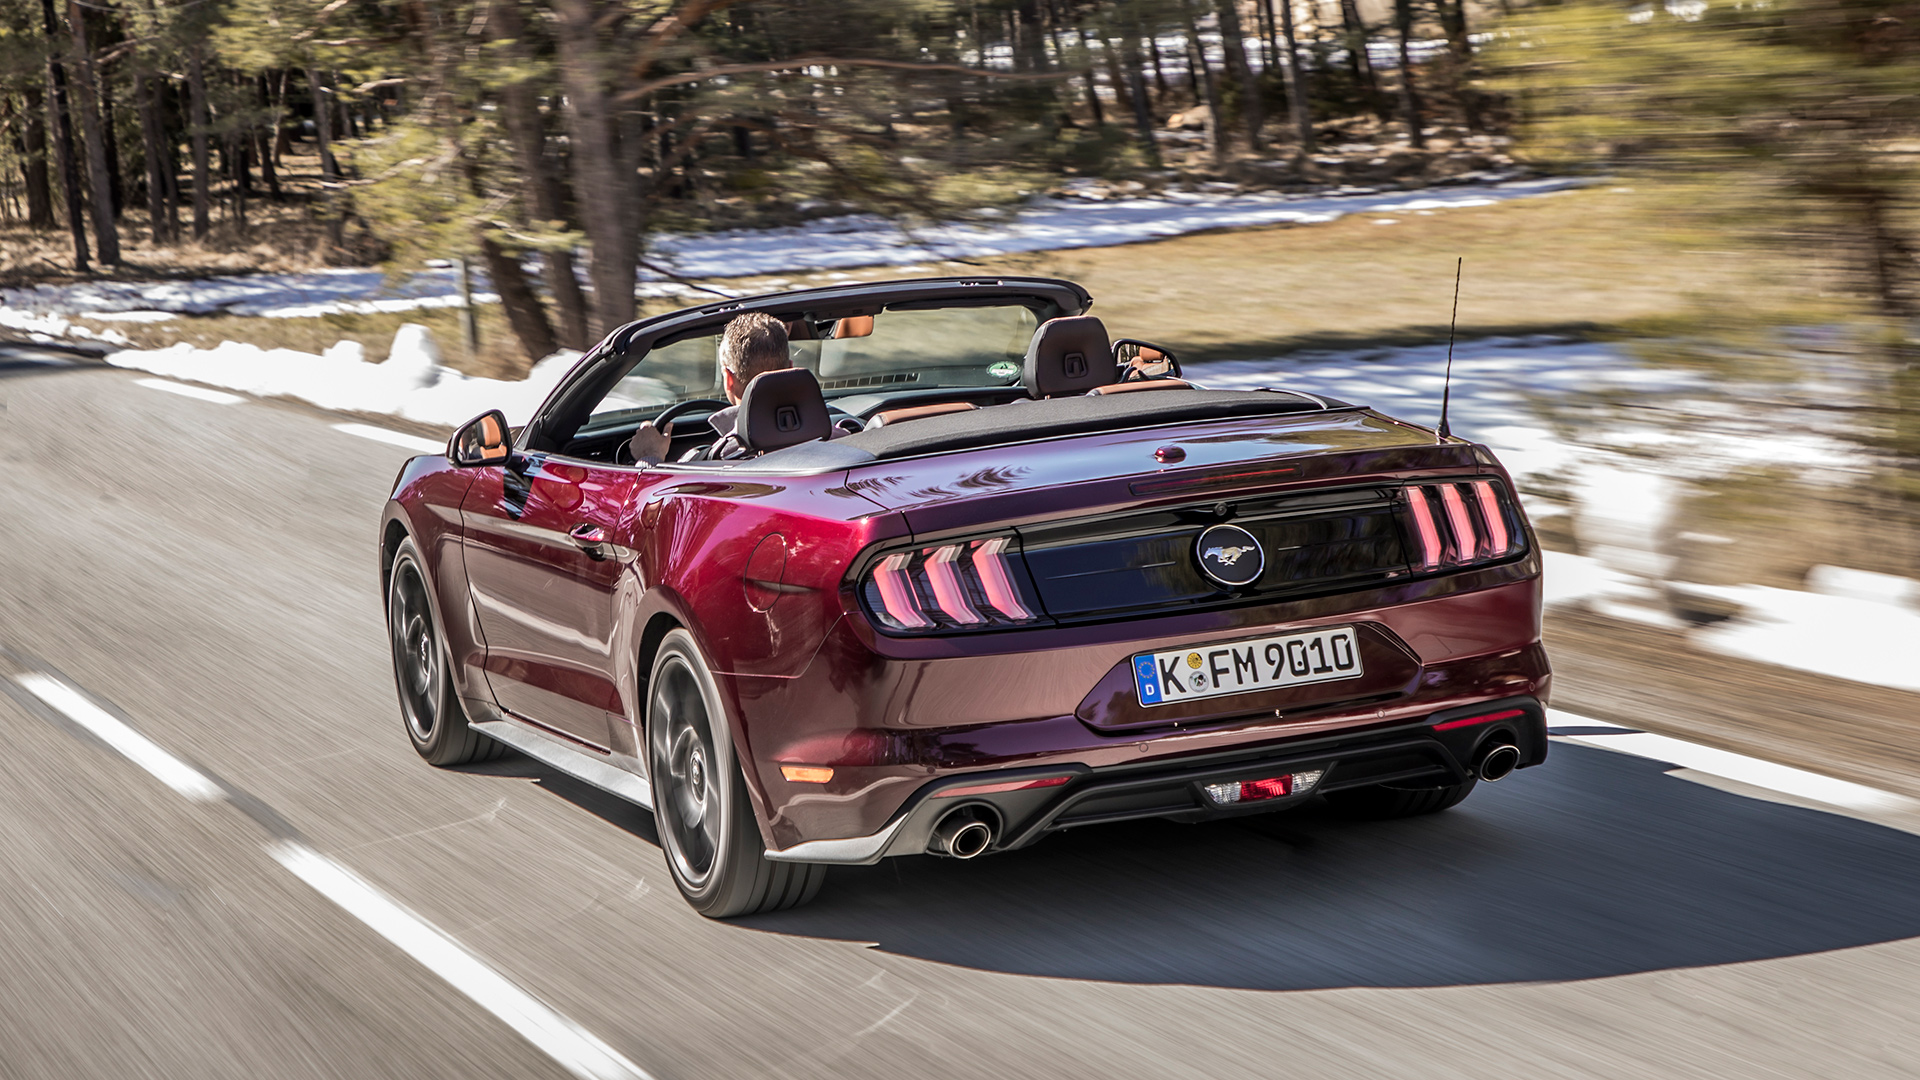 New used ford mustang cars for sale auto trader